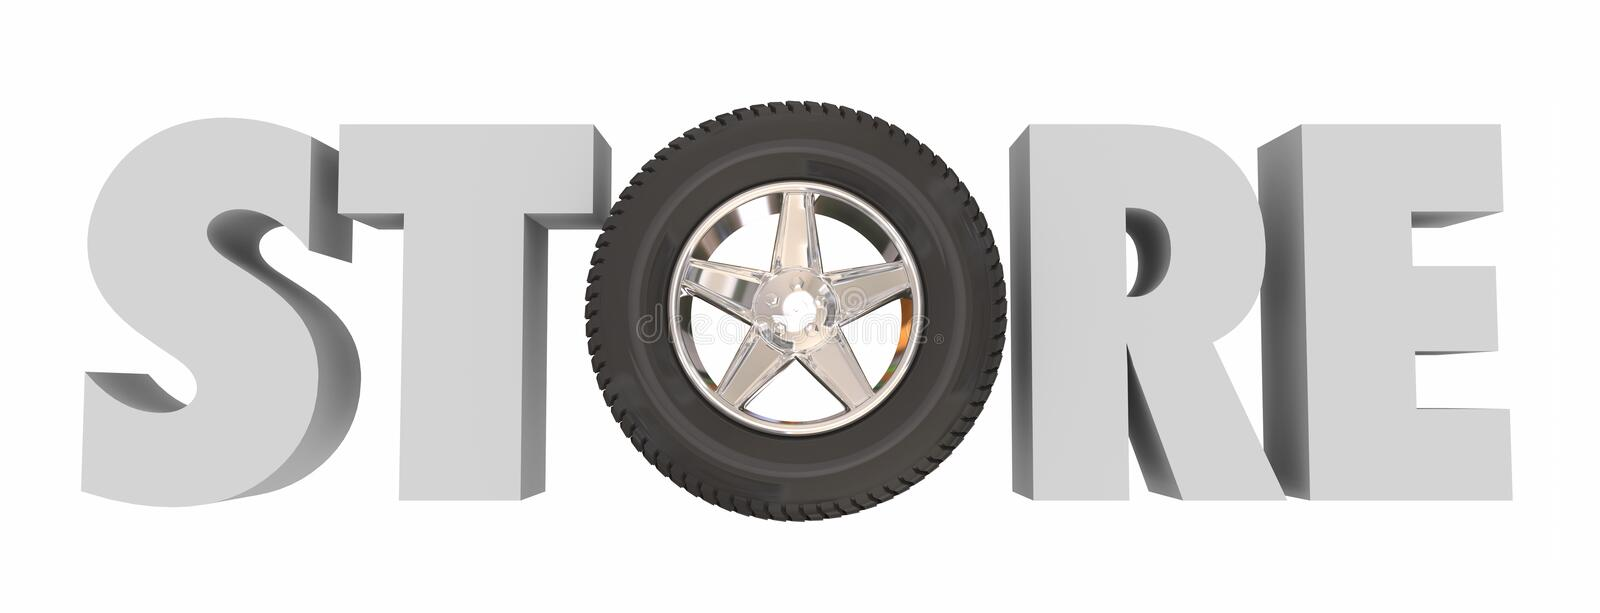 Store 3d Word Wheel Tire Auto Supply Parts Shop vector illustration